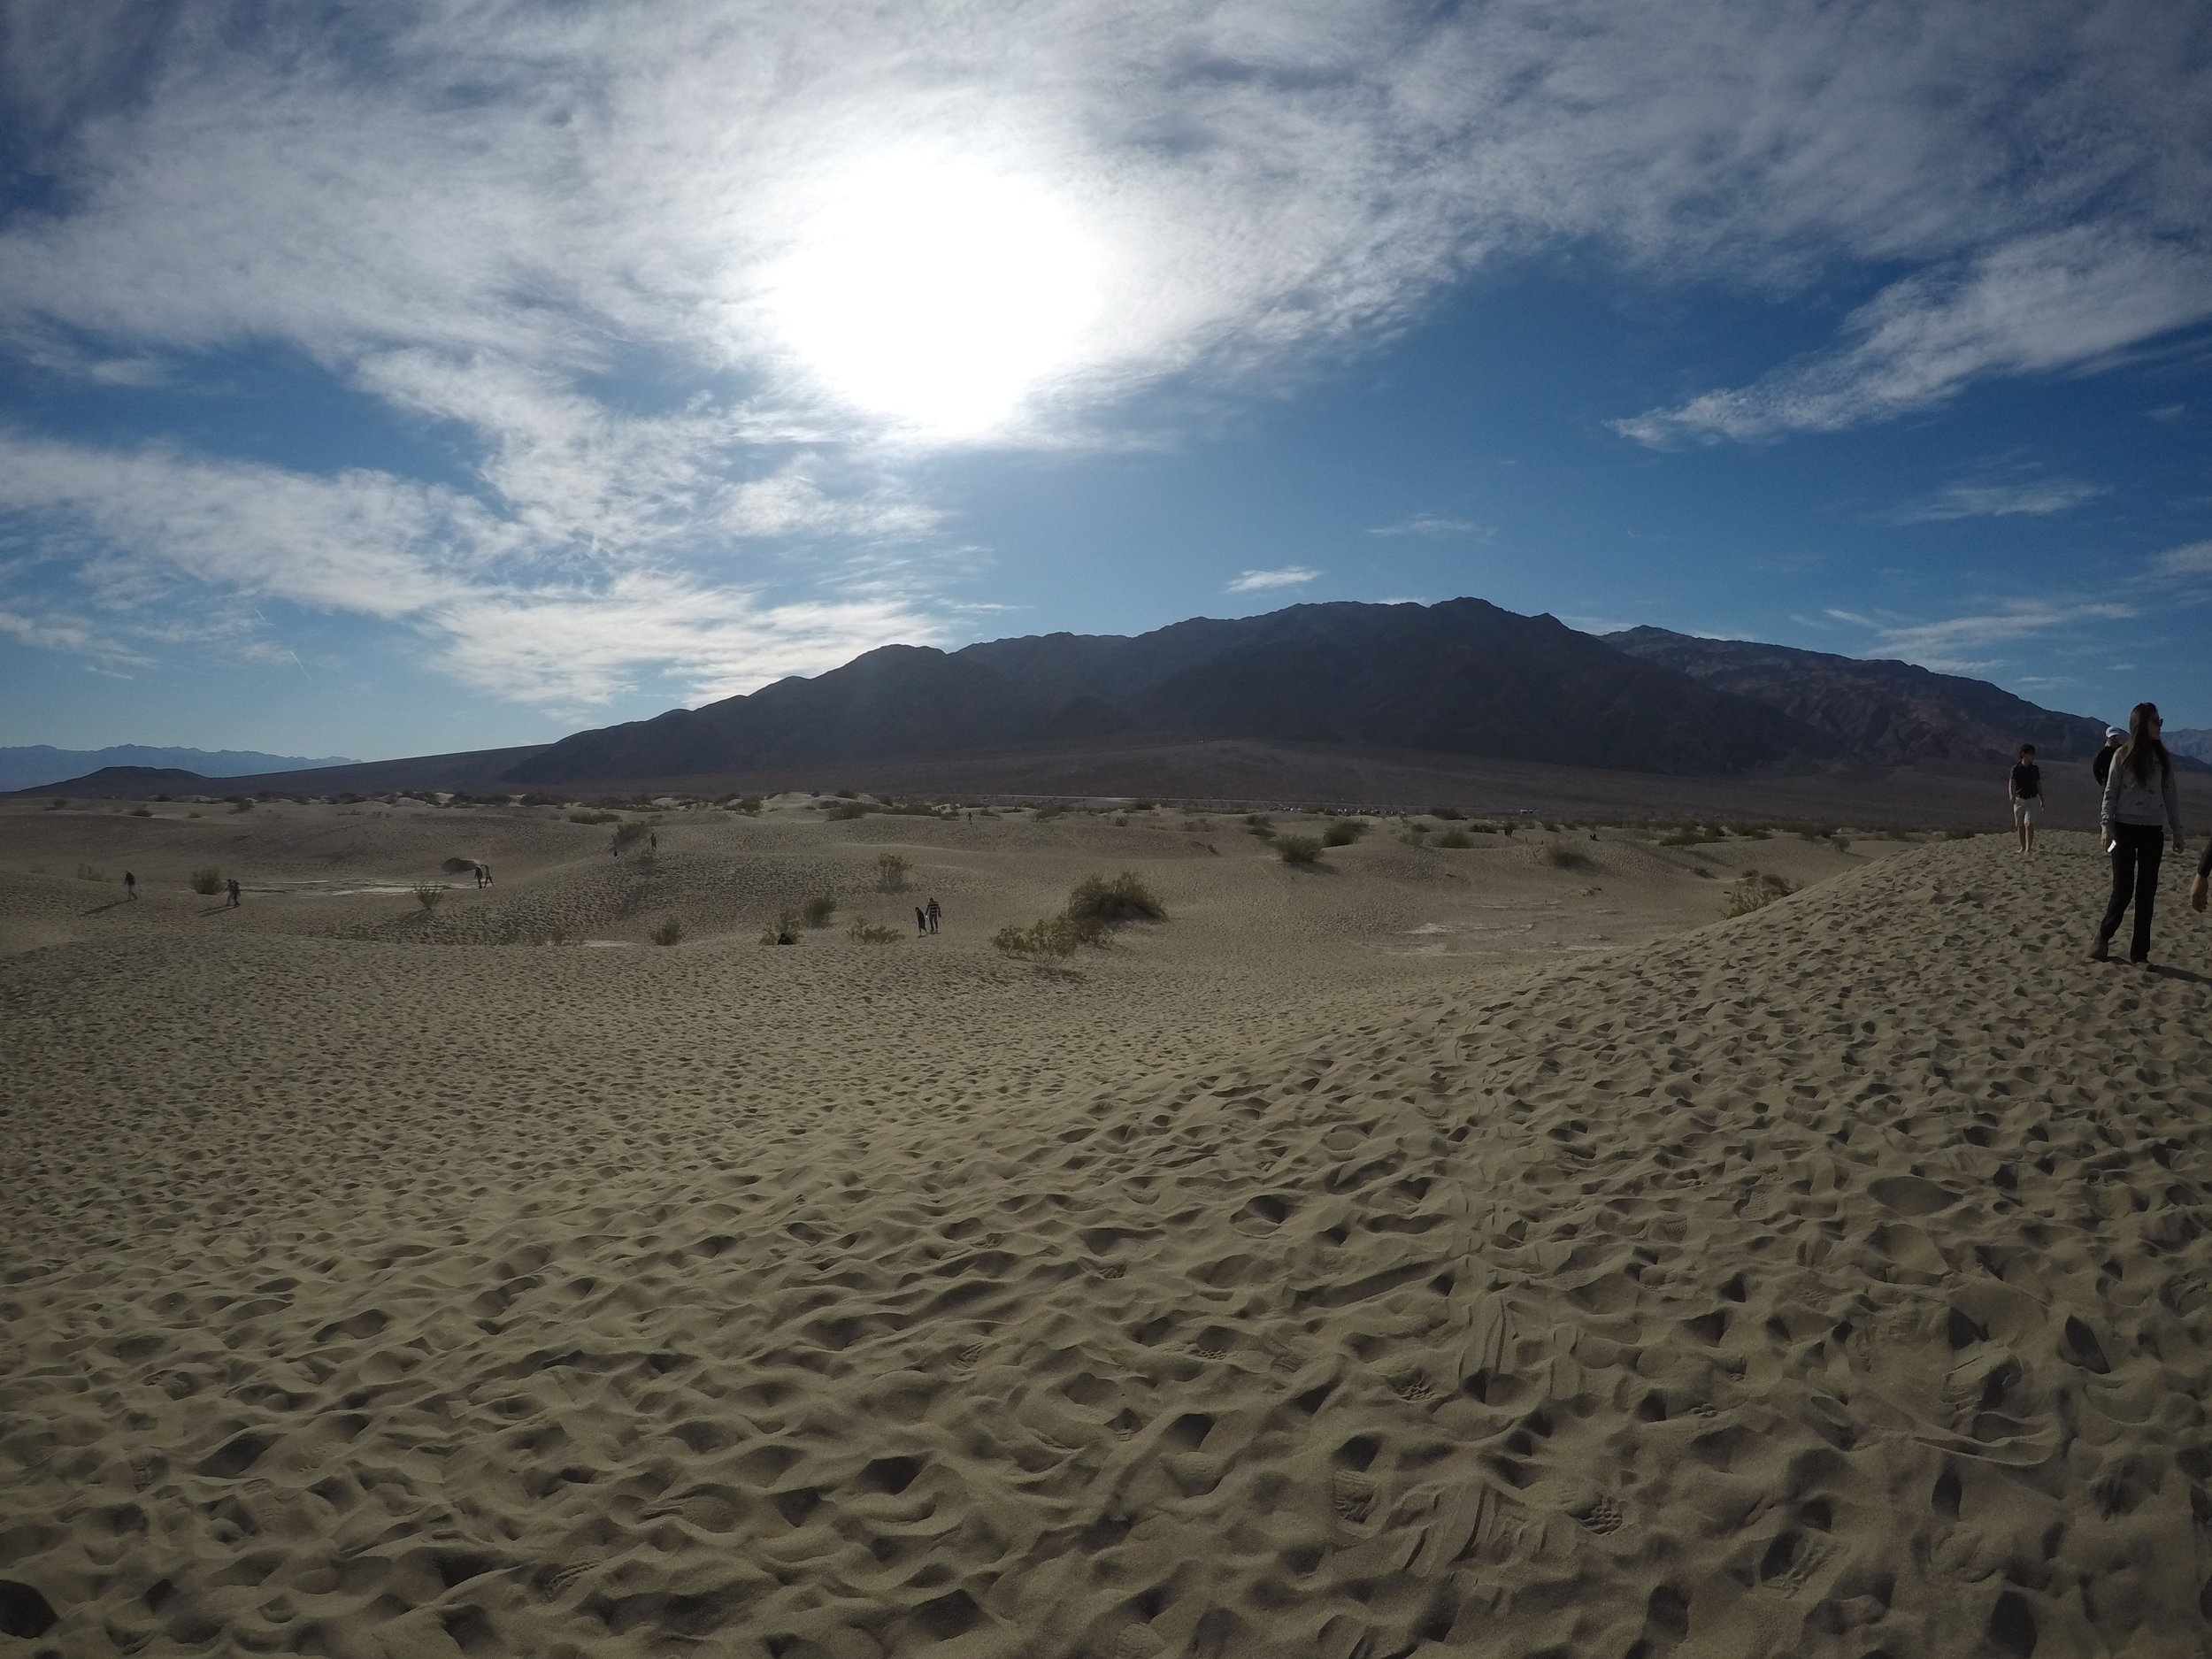 The Mesquite Flat Sand Dunes are one of the park's most popular destinations.